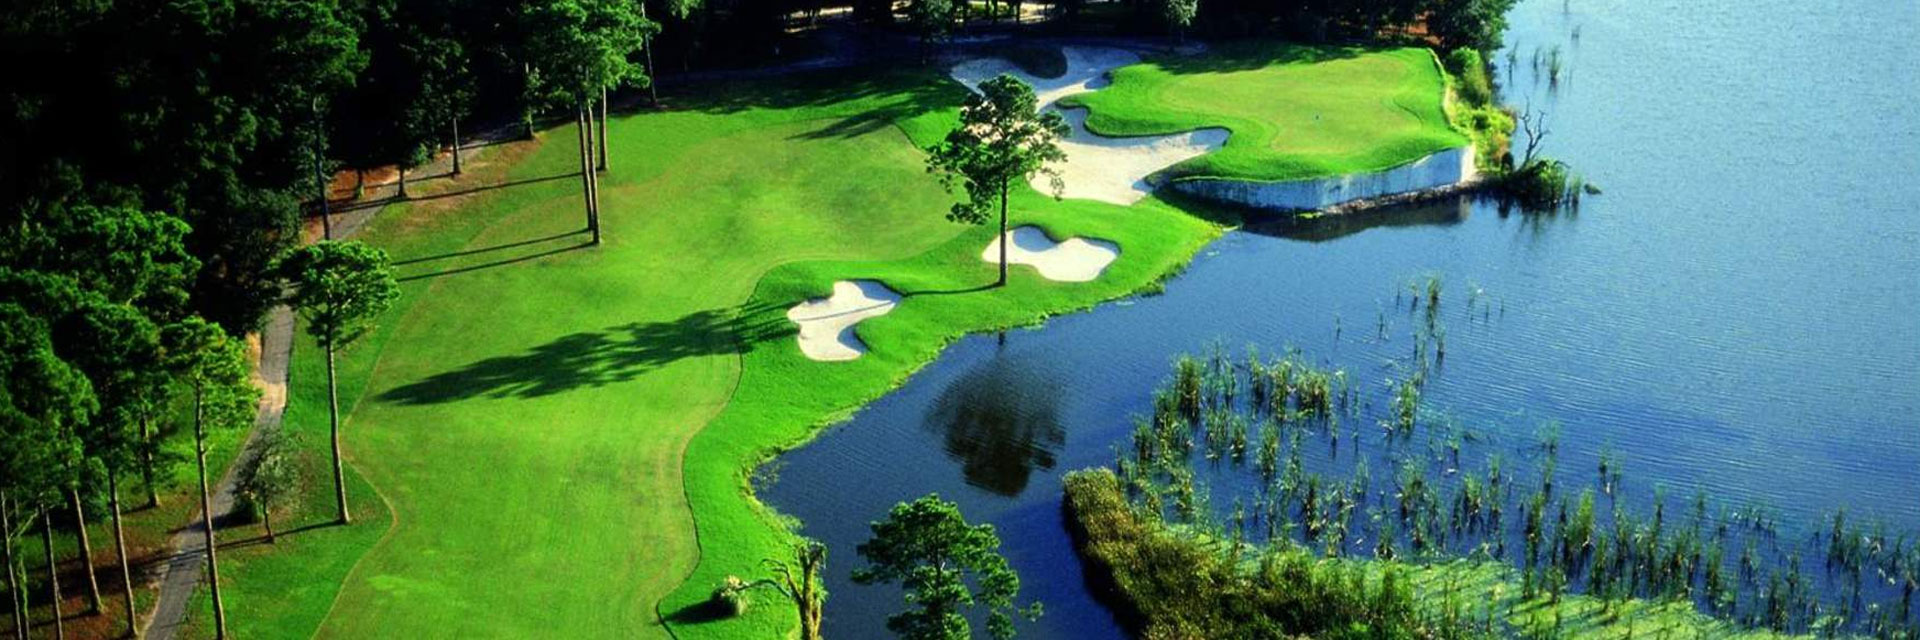 Myrtle Beach, SC Golf Package: Legends: Free Night, Free Round, Free Breakfast, Lunch, Beers - starting at $278 all in!